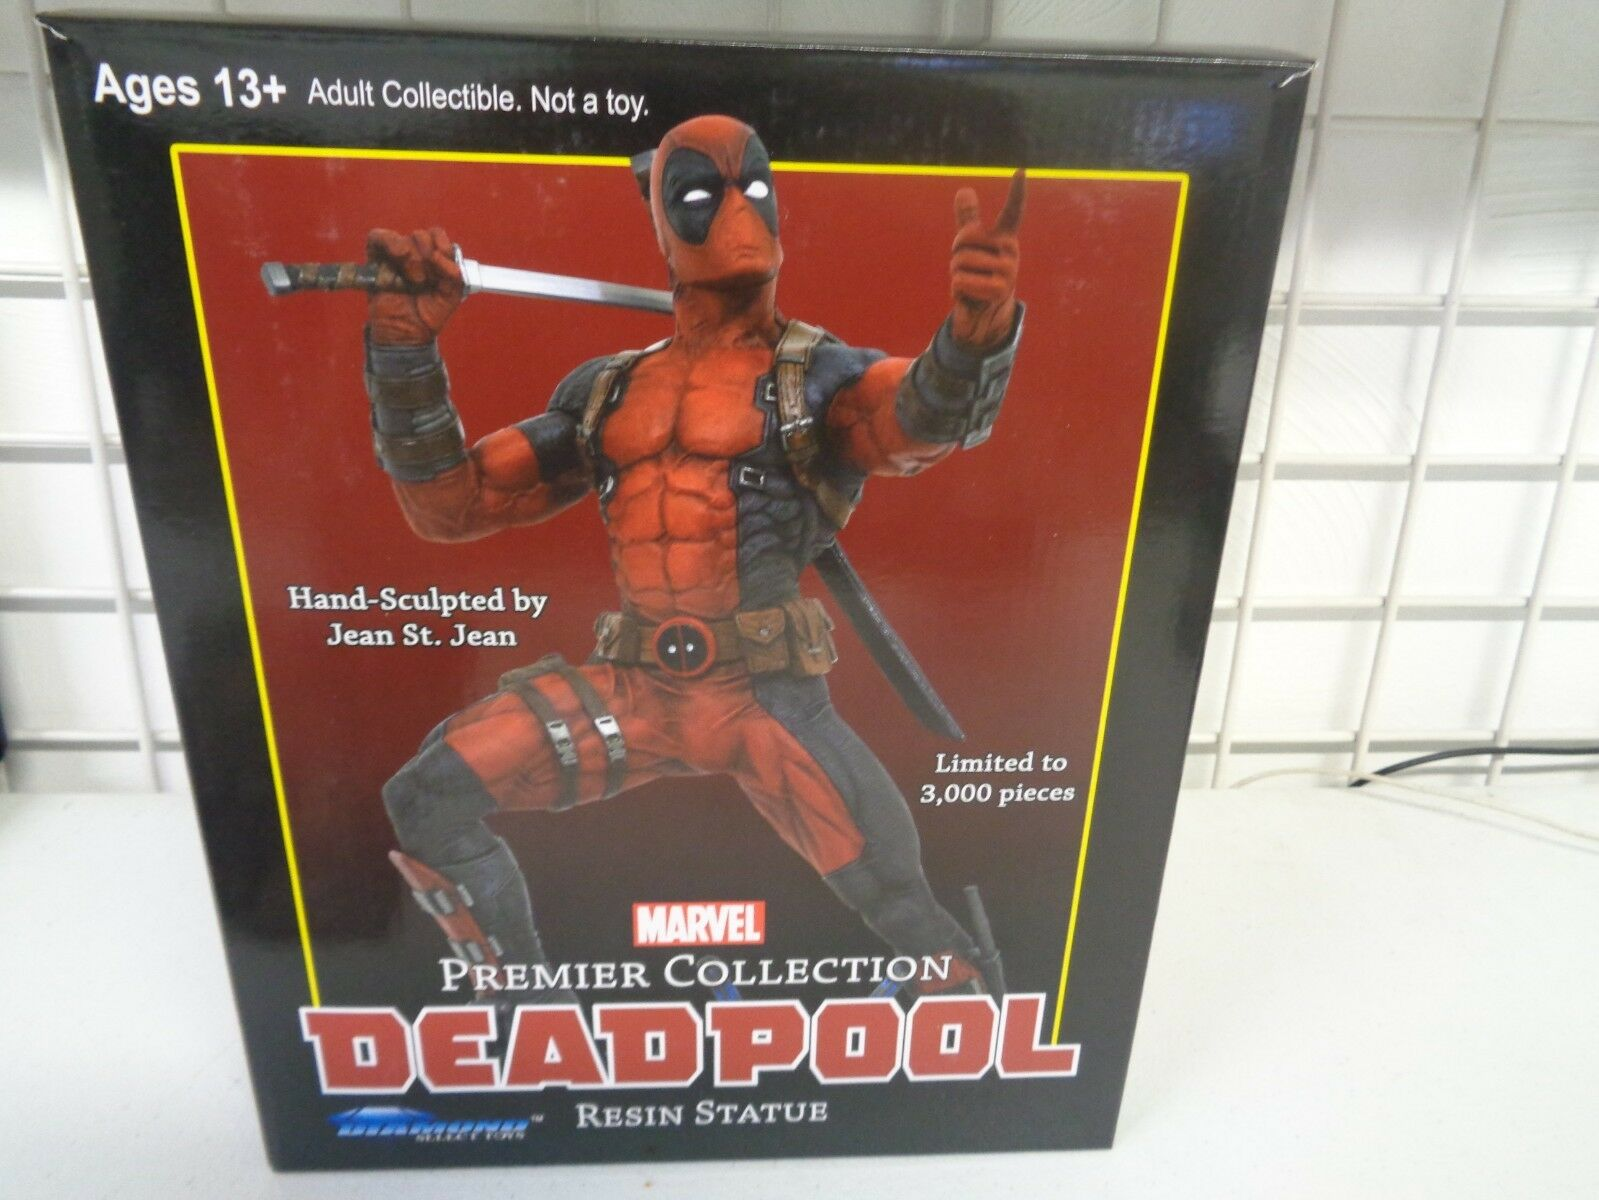 DIAMOND SELECT TOYS MARVEL PREMIER COLLECTION RESIN STATUE DEADPOOL 1463 3000